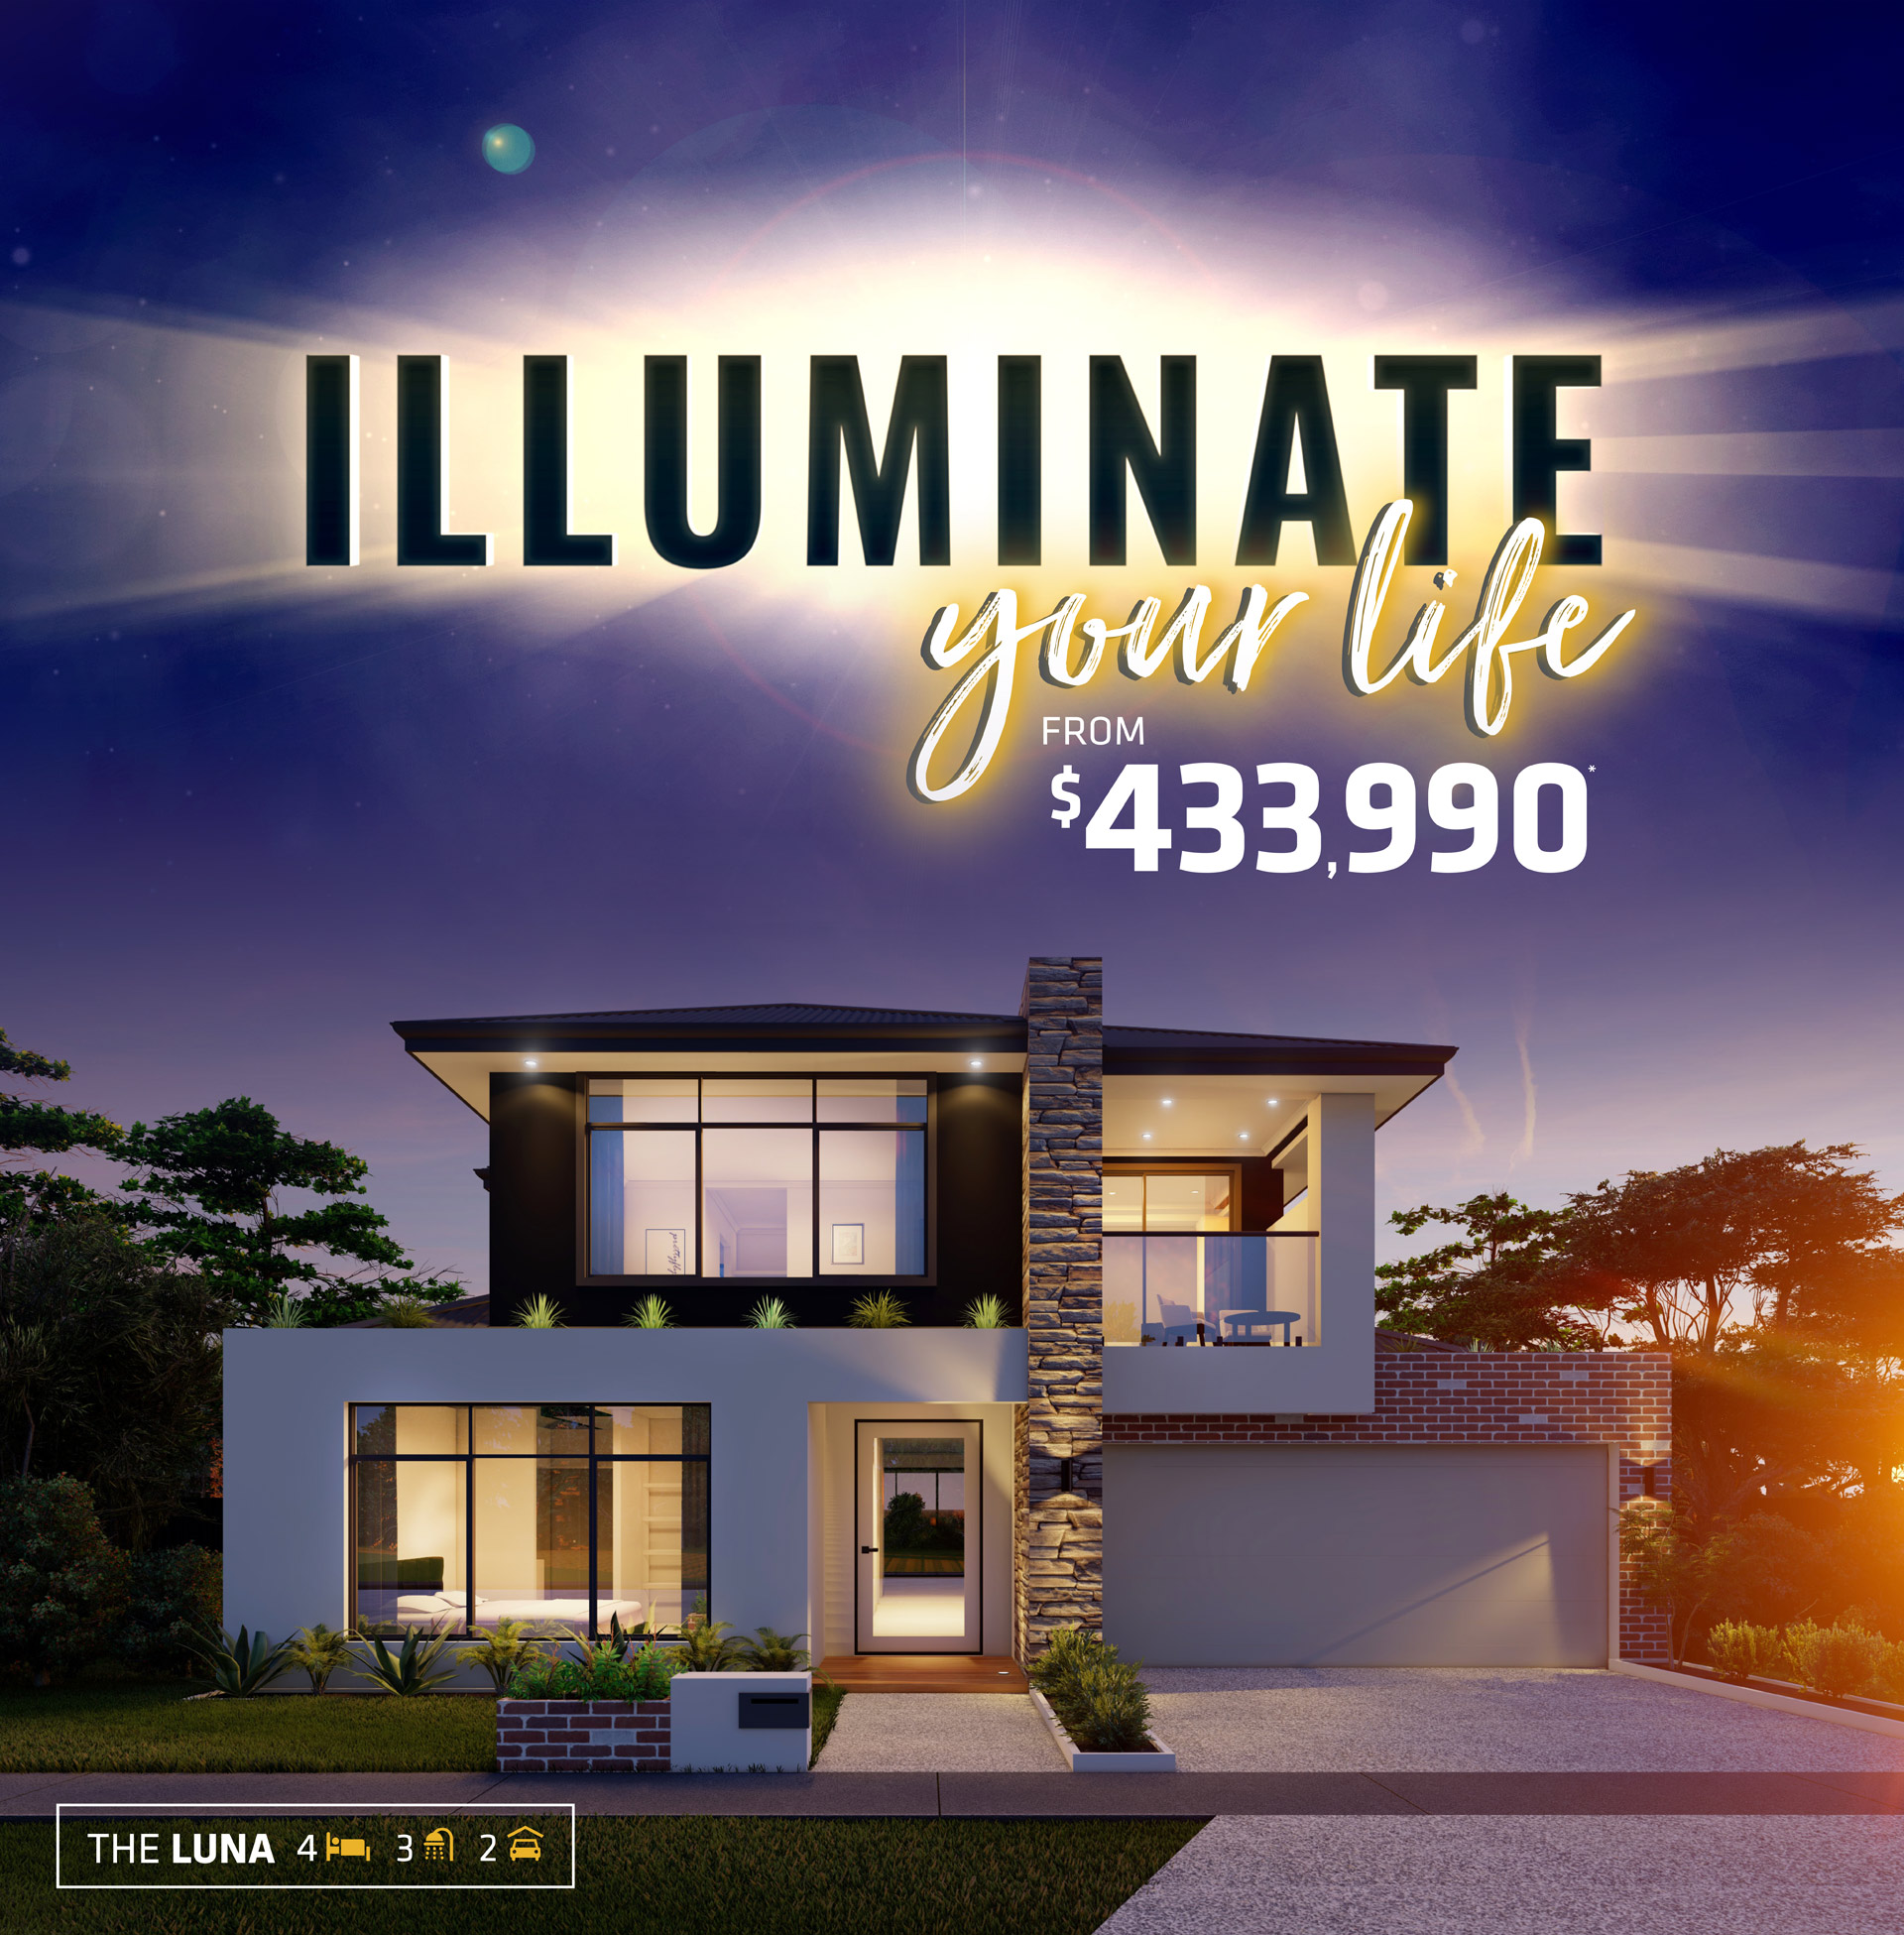 101 Residential Illuminate Your Life promotion banner